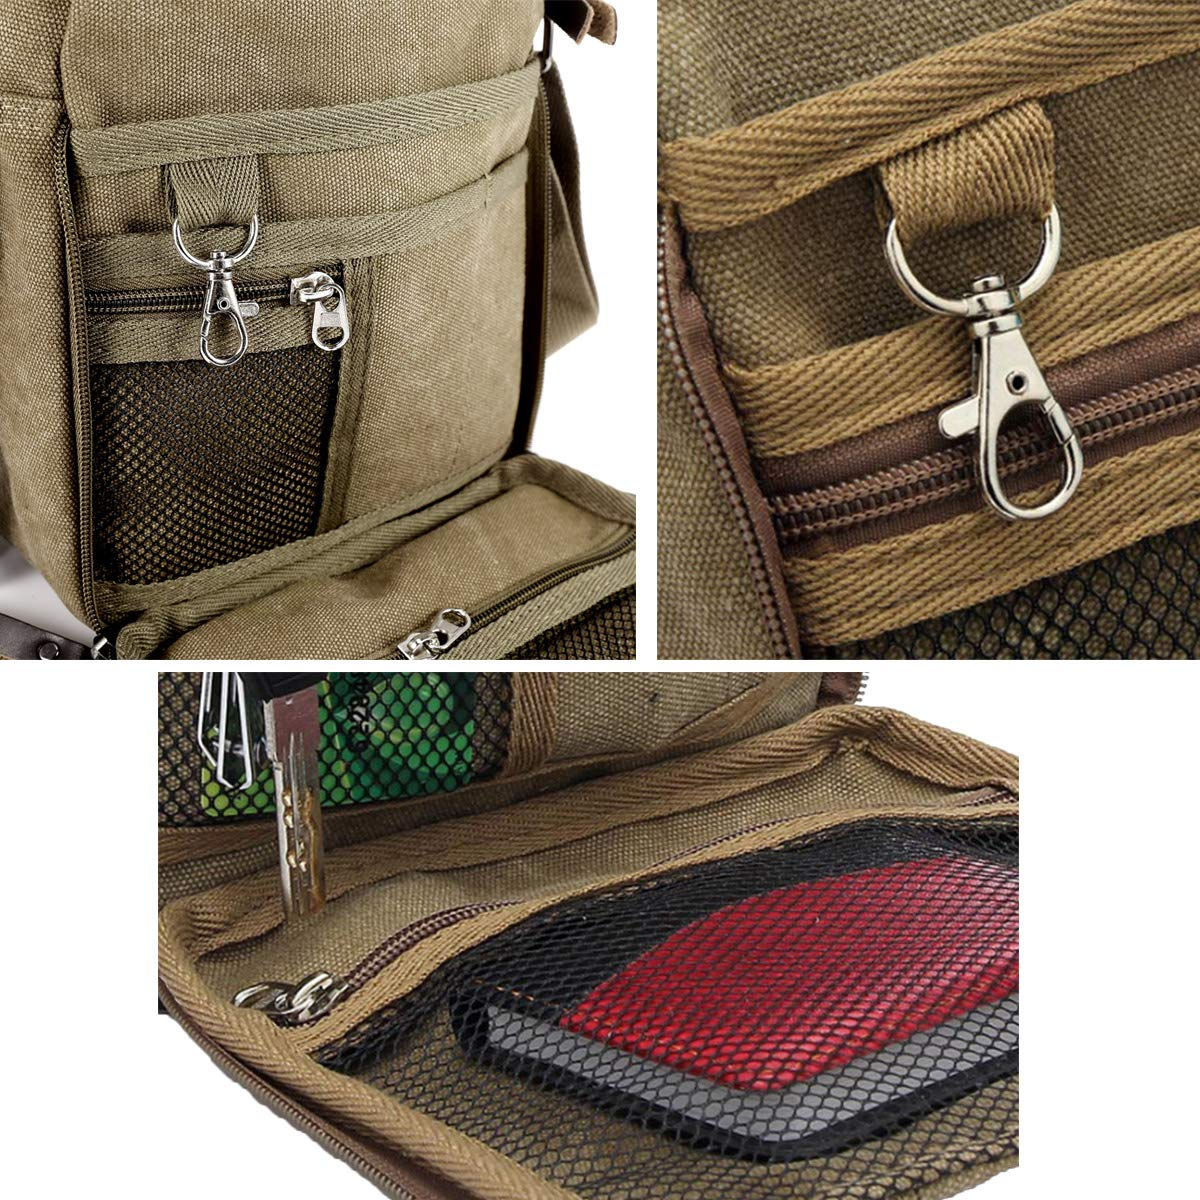 Aimer Unisex Multifunctional Vertical Small Canvas Bag Outdoor Travel Sports Coffee Crossbody Shoulder Bag